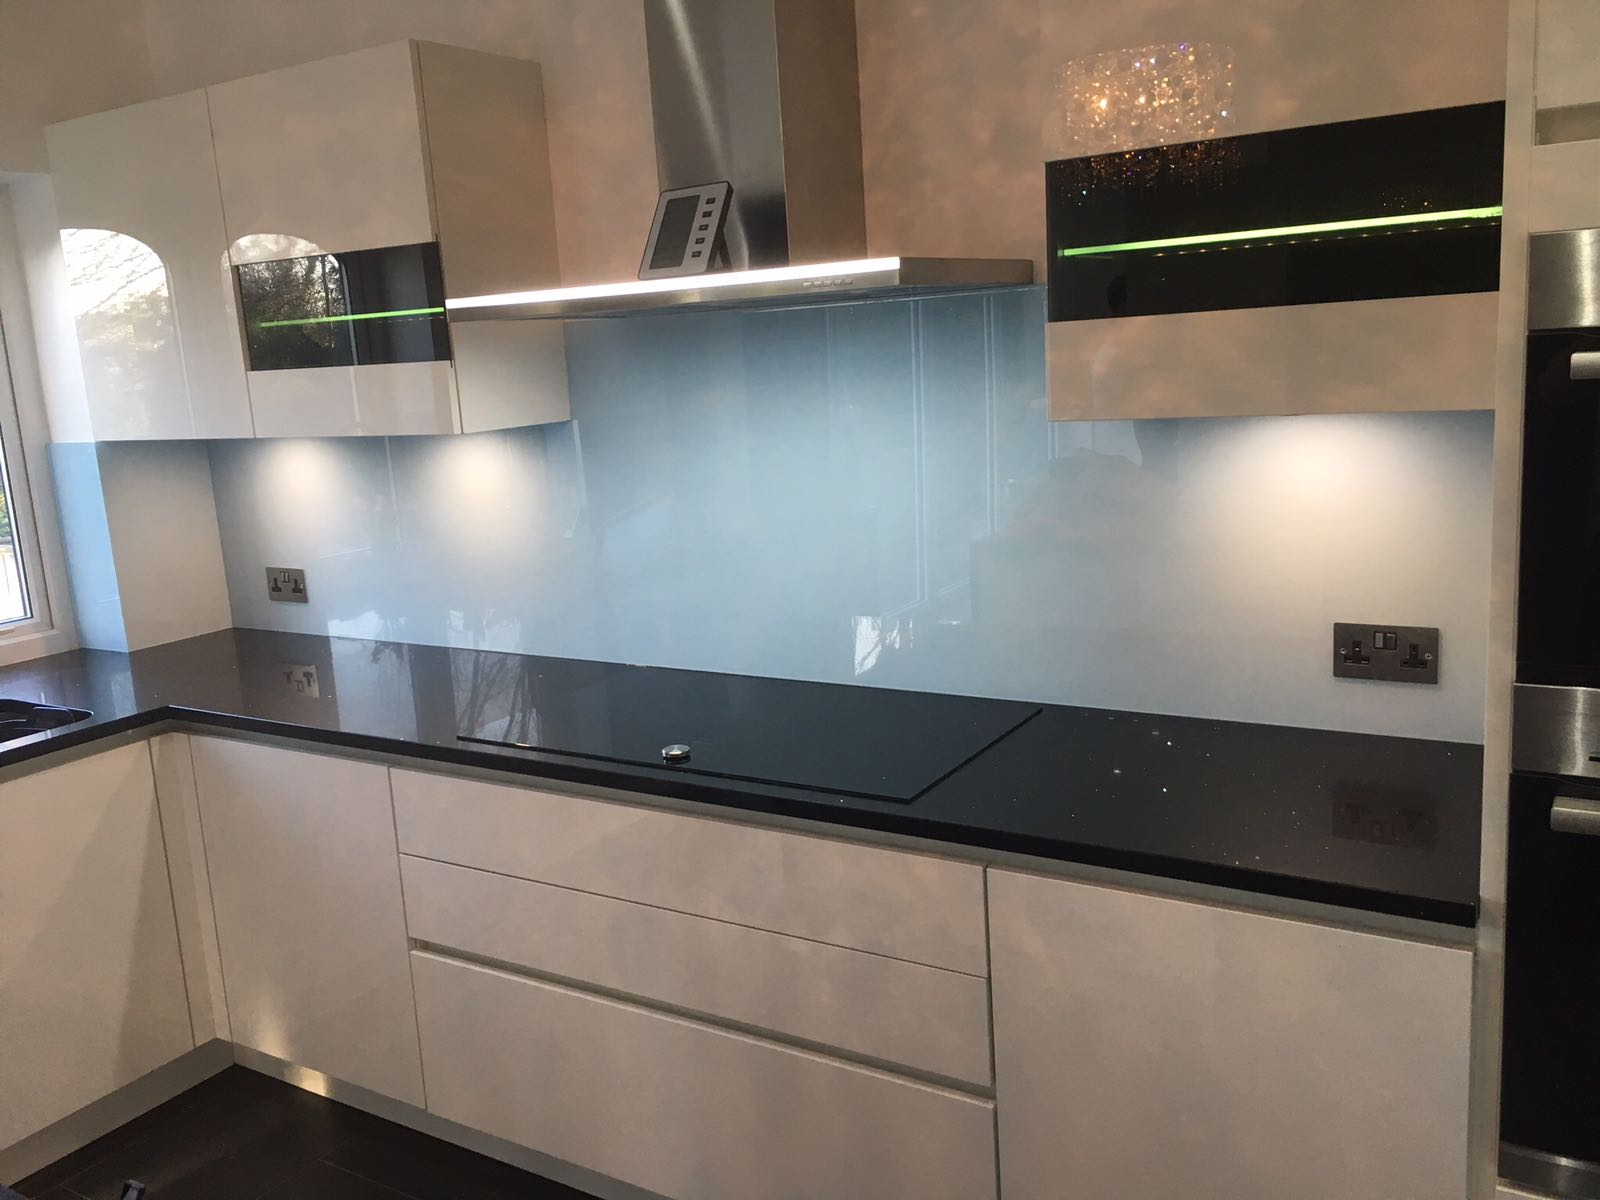 Backpainted Glass Suppliers Kent | Coloured Splashback Panels ...